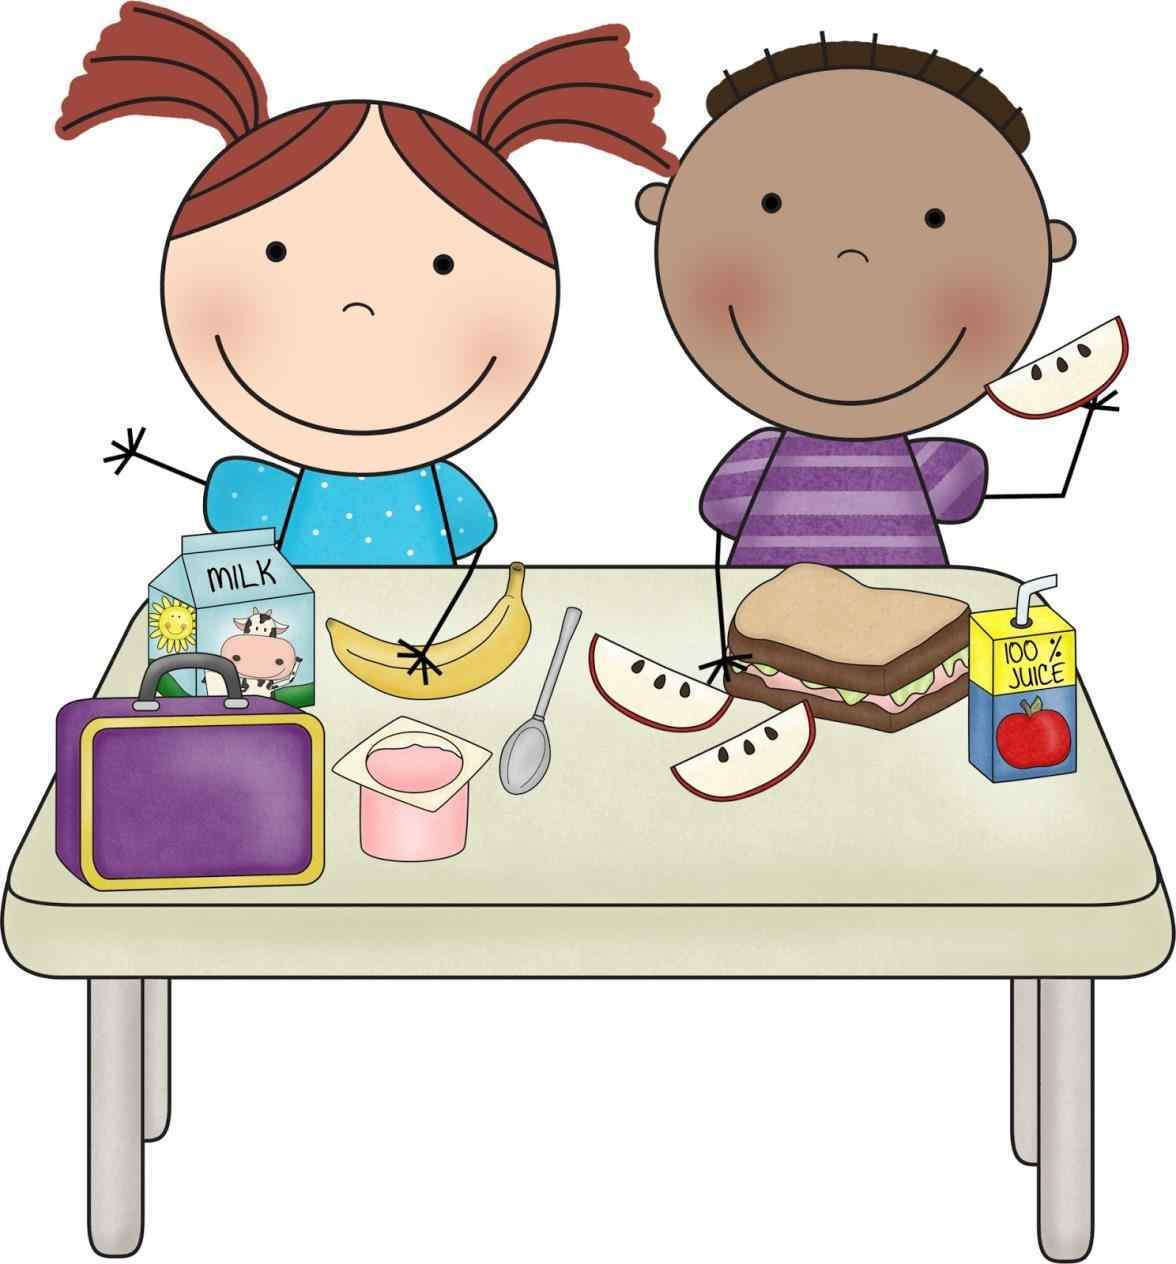 snack clipart at getdrawings com free for personal use snack rh getdrawings com snack clip art to print snack clip art to print